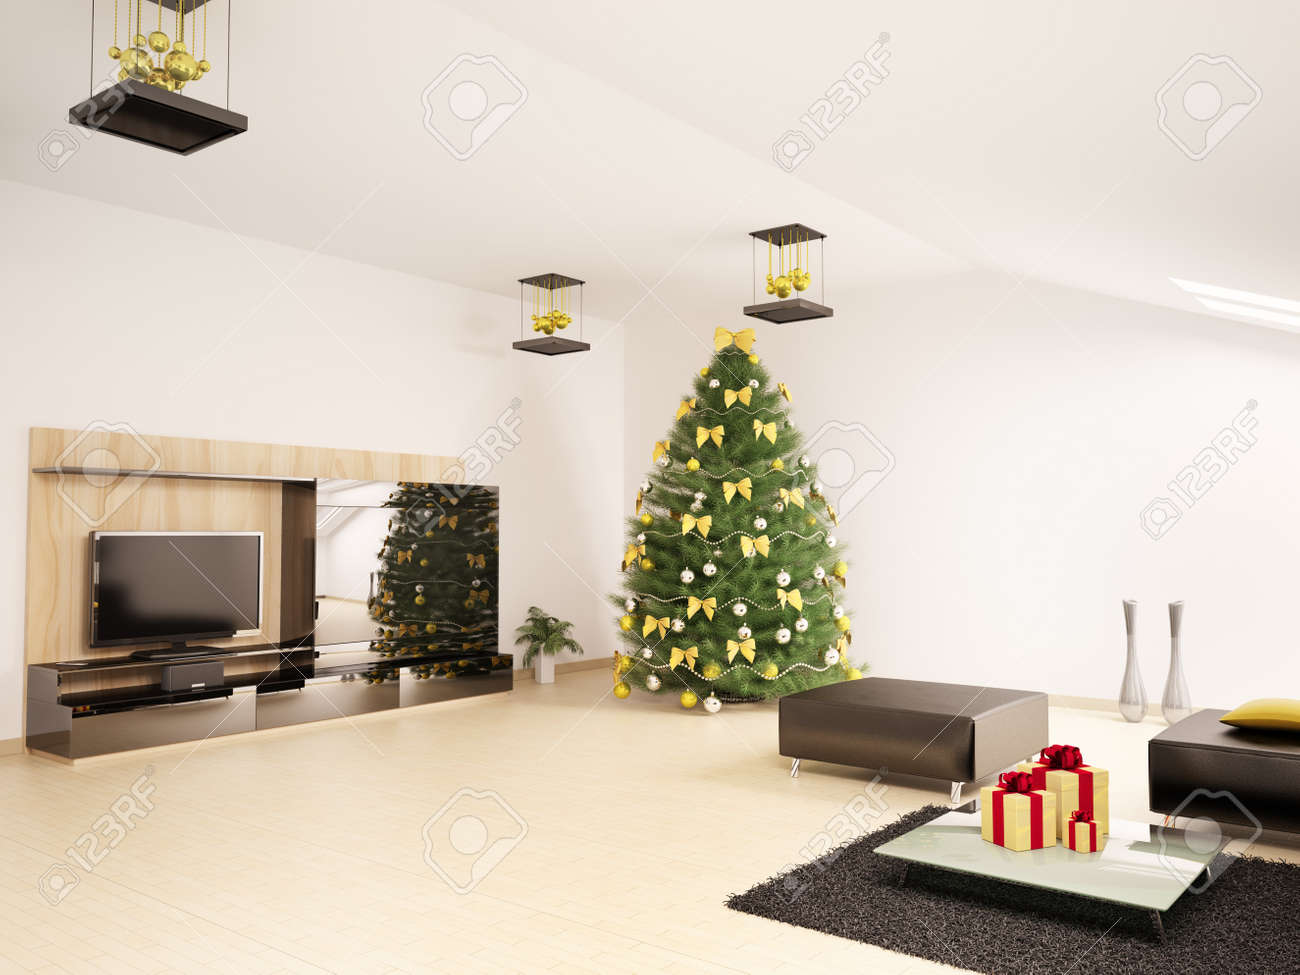 Xmas Living Room Christmas Fir Tree With Decorations In Modern Living Room Interior